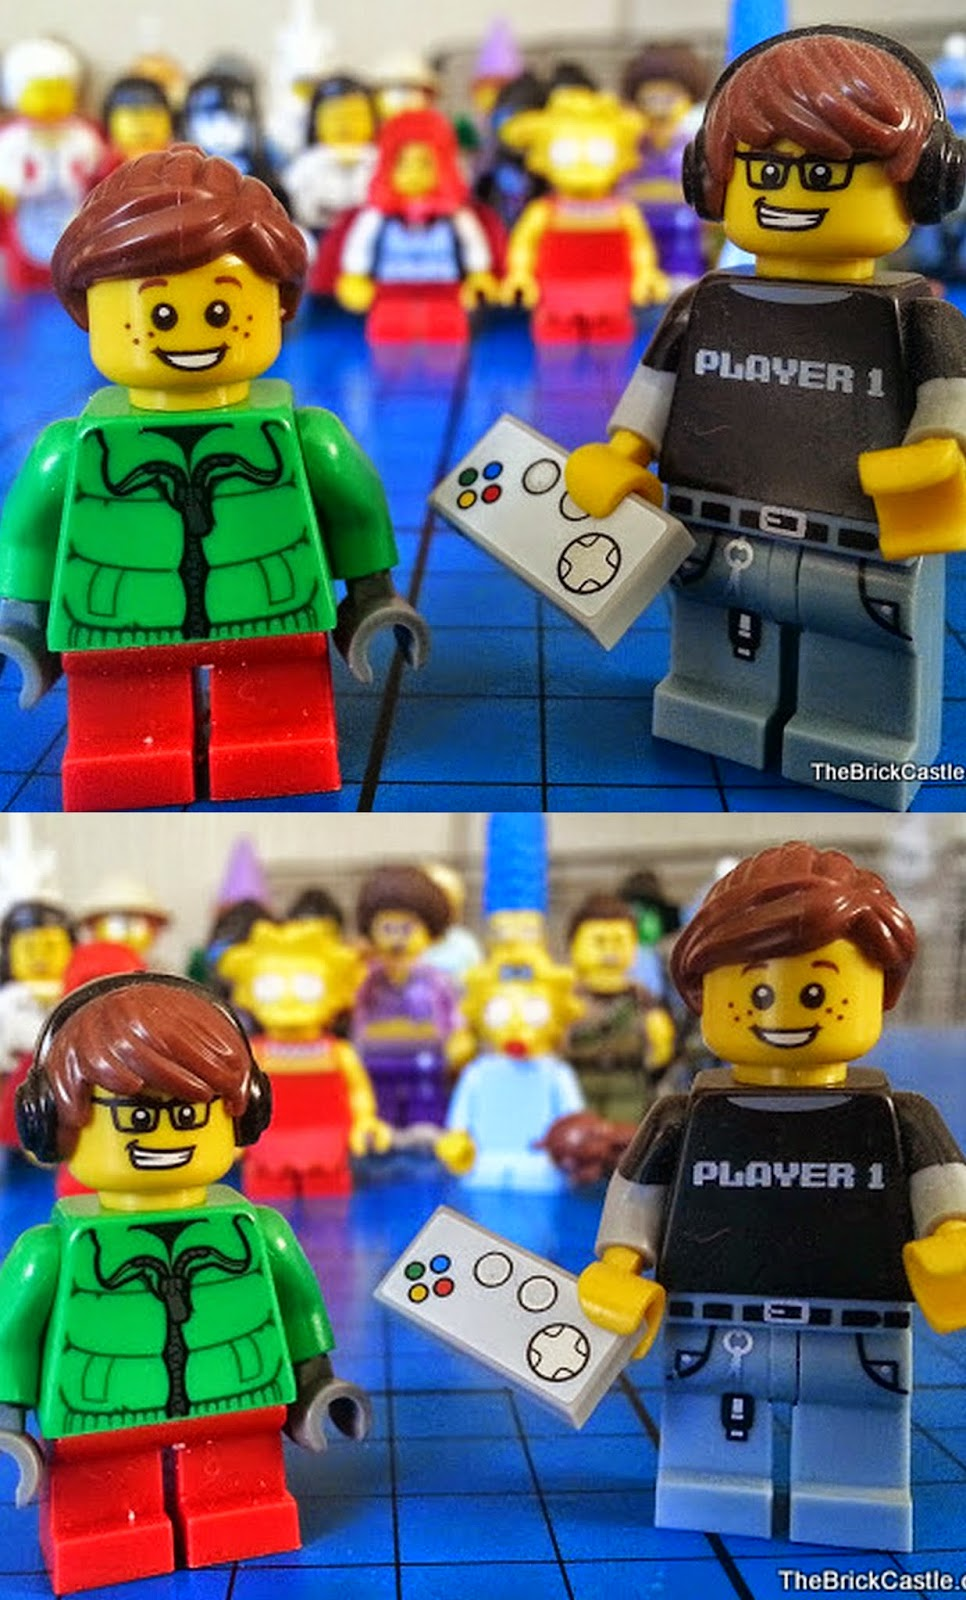 Make a LEGO character female if you want gamer girl